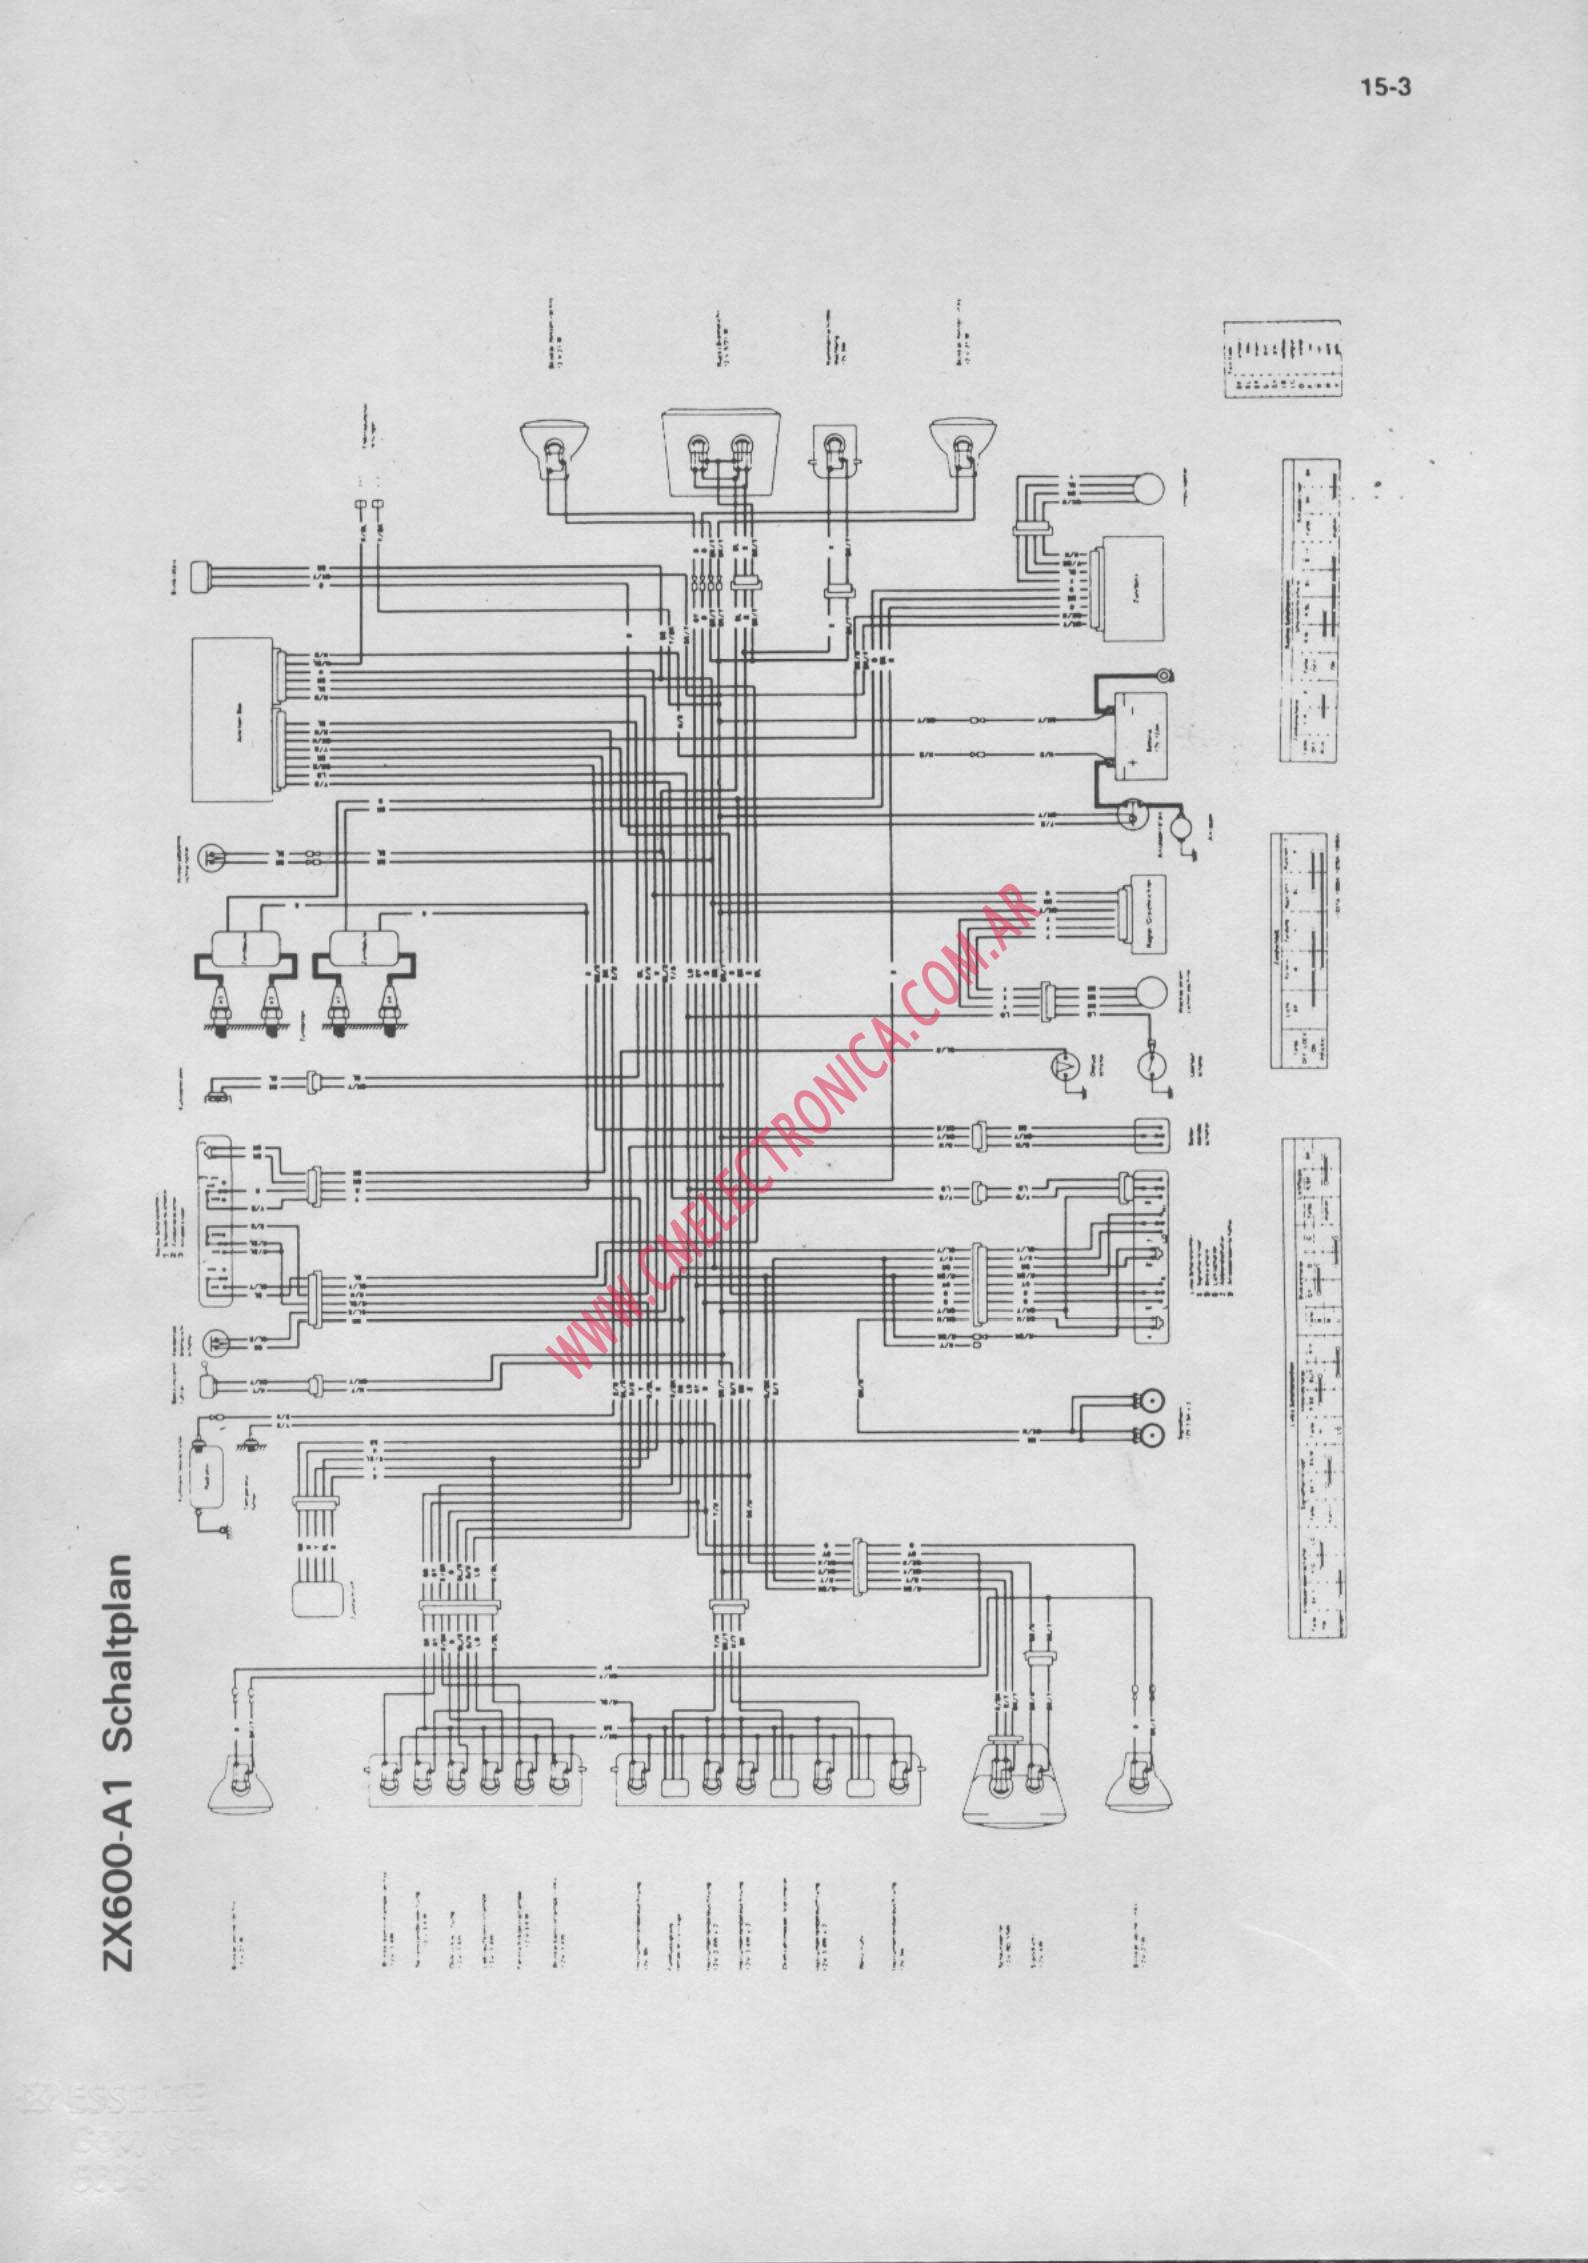 Zx 600 Wiring Diagram Great Design Of Kawasaki 1100 Stx Ninja 500 Free Engine Adidas Coolmax